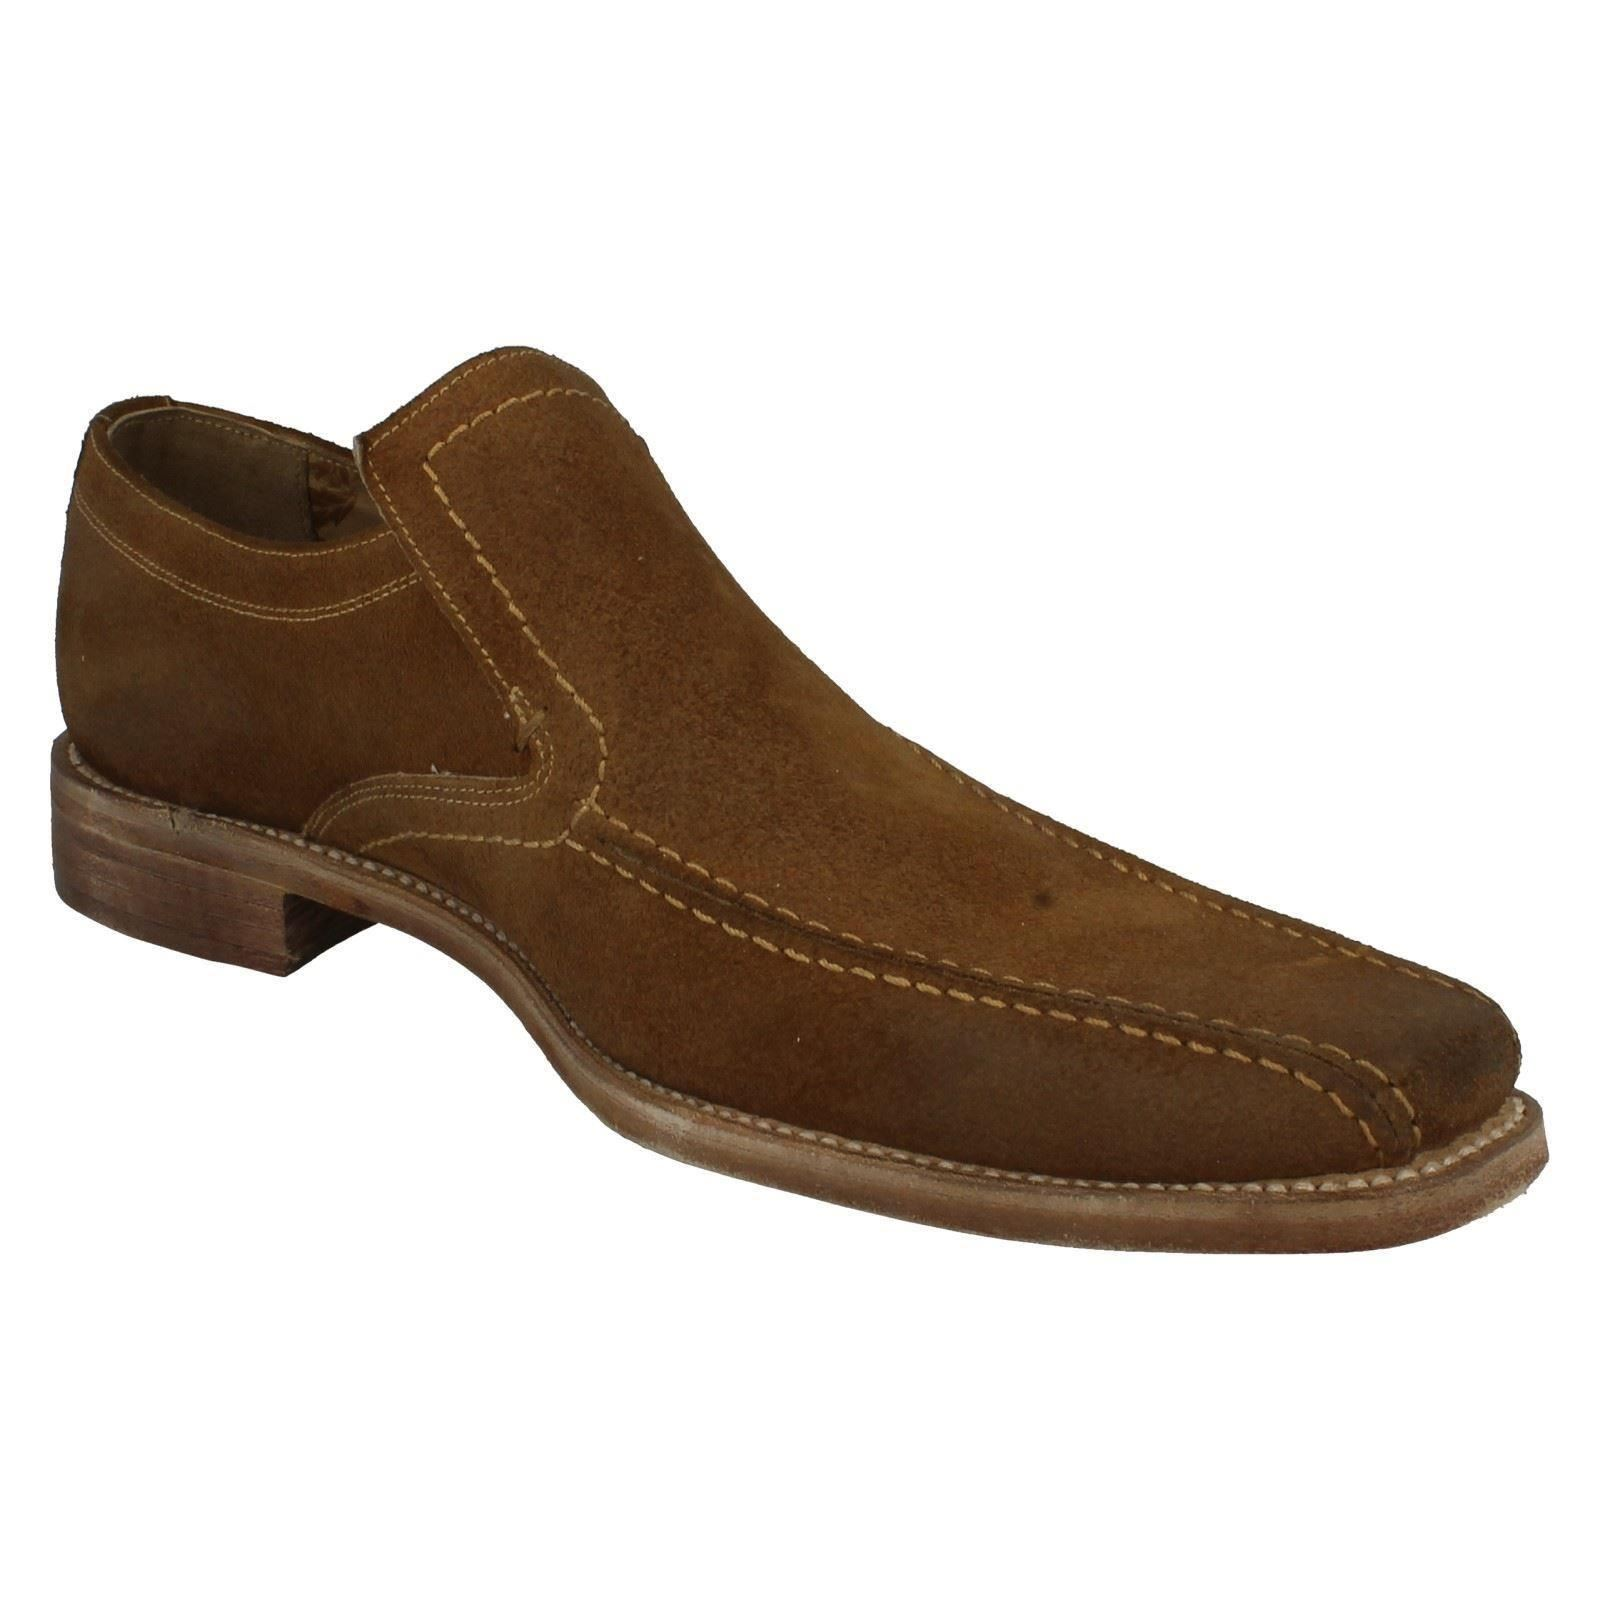 Uomo Loake Formal Distressed Suede - Schuhes Fitting F Style - Suede Leon 0e338a